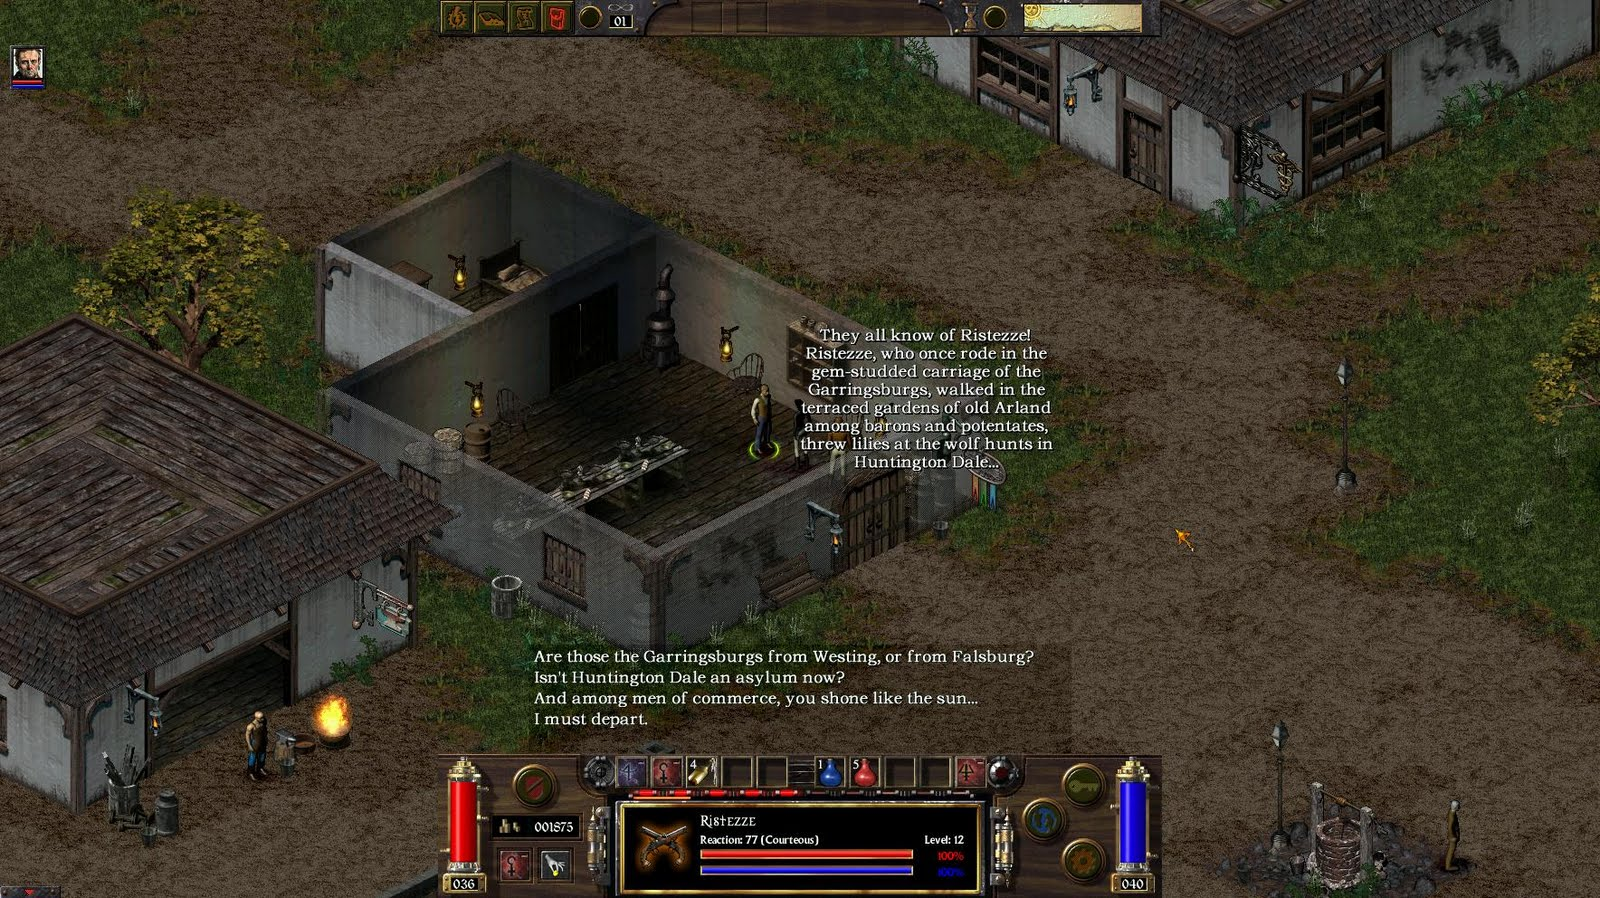 Tchos' Gaming and Modding: Arcanum: of Steamworks and Magick